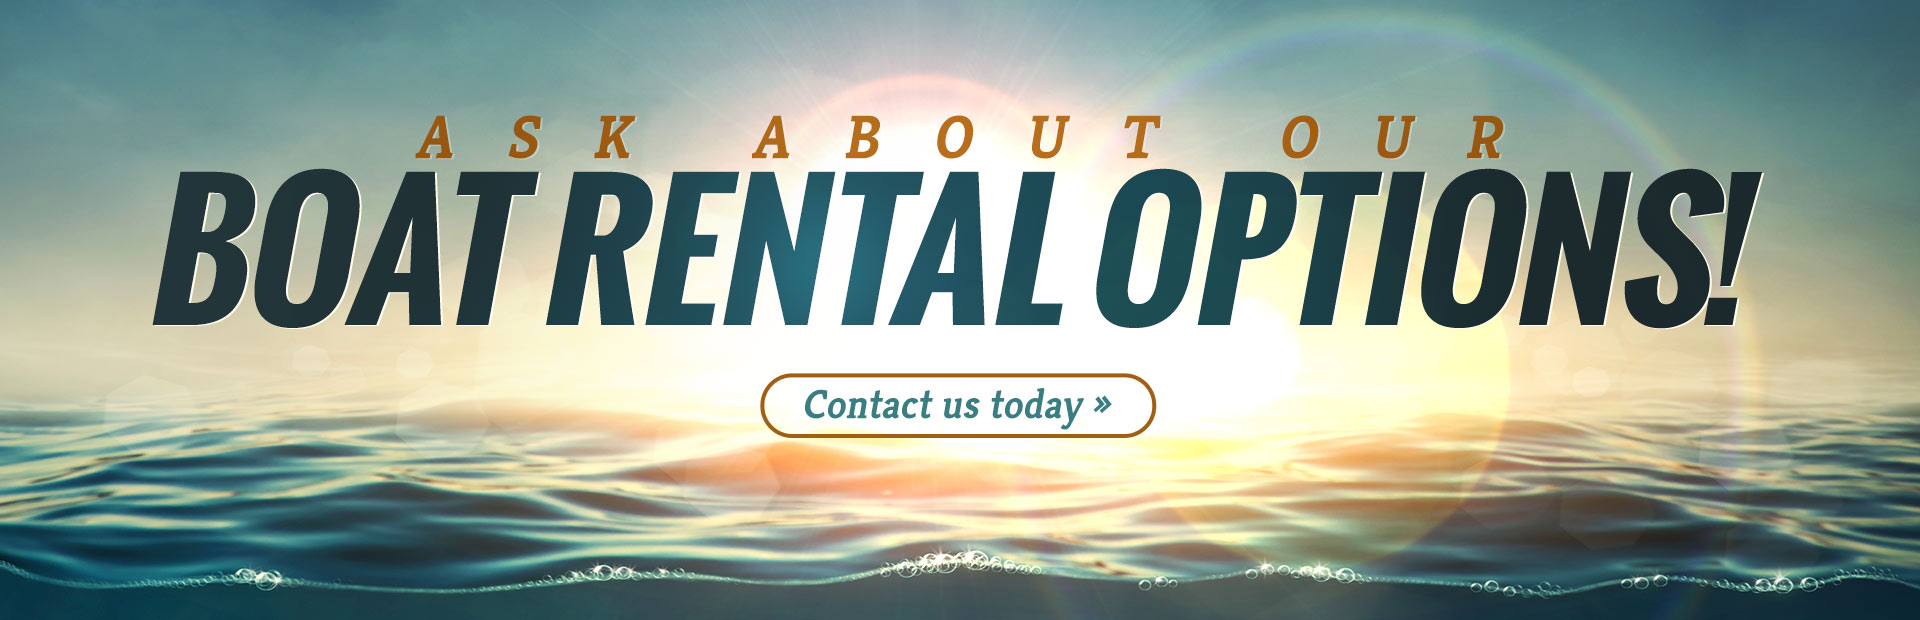 Find the boat rental that best fits your needs. Click here to contact us today and ask about our opt